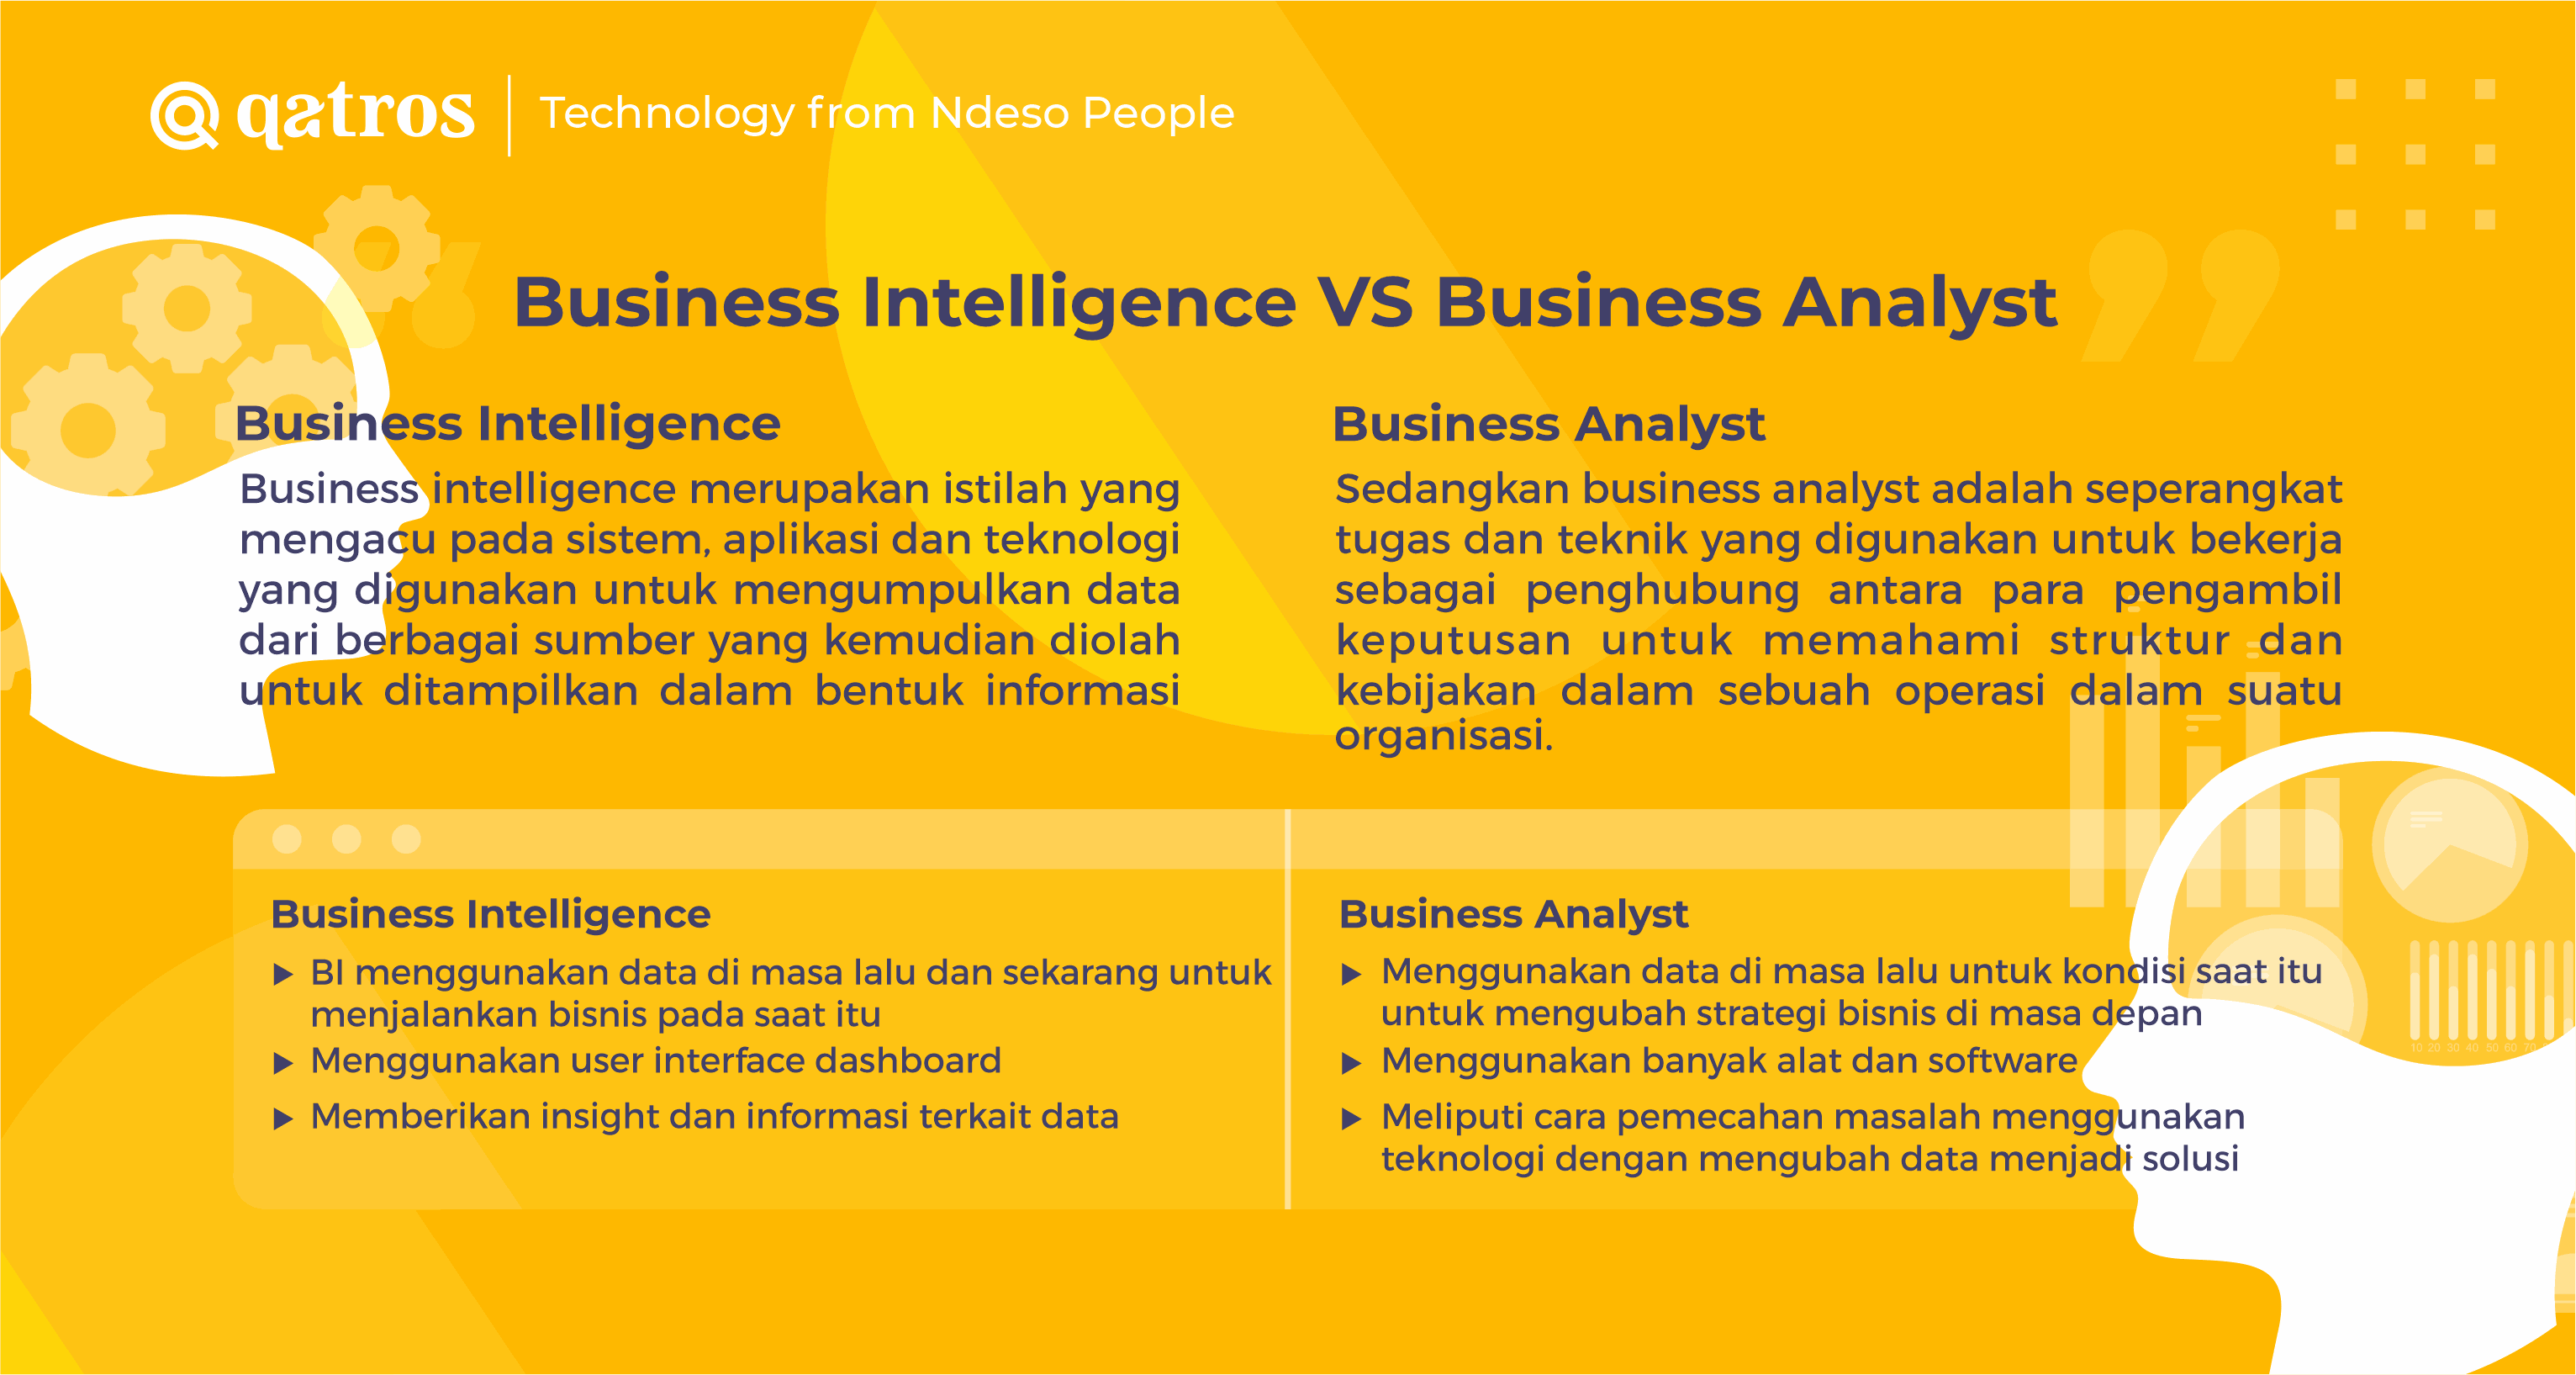 Business analyst vs business intelligence